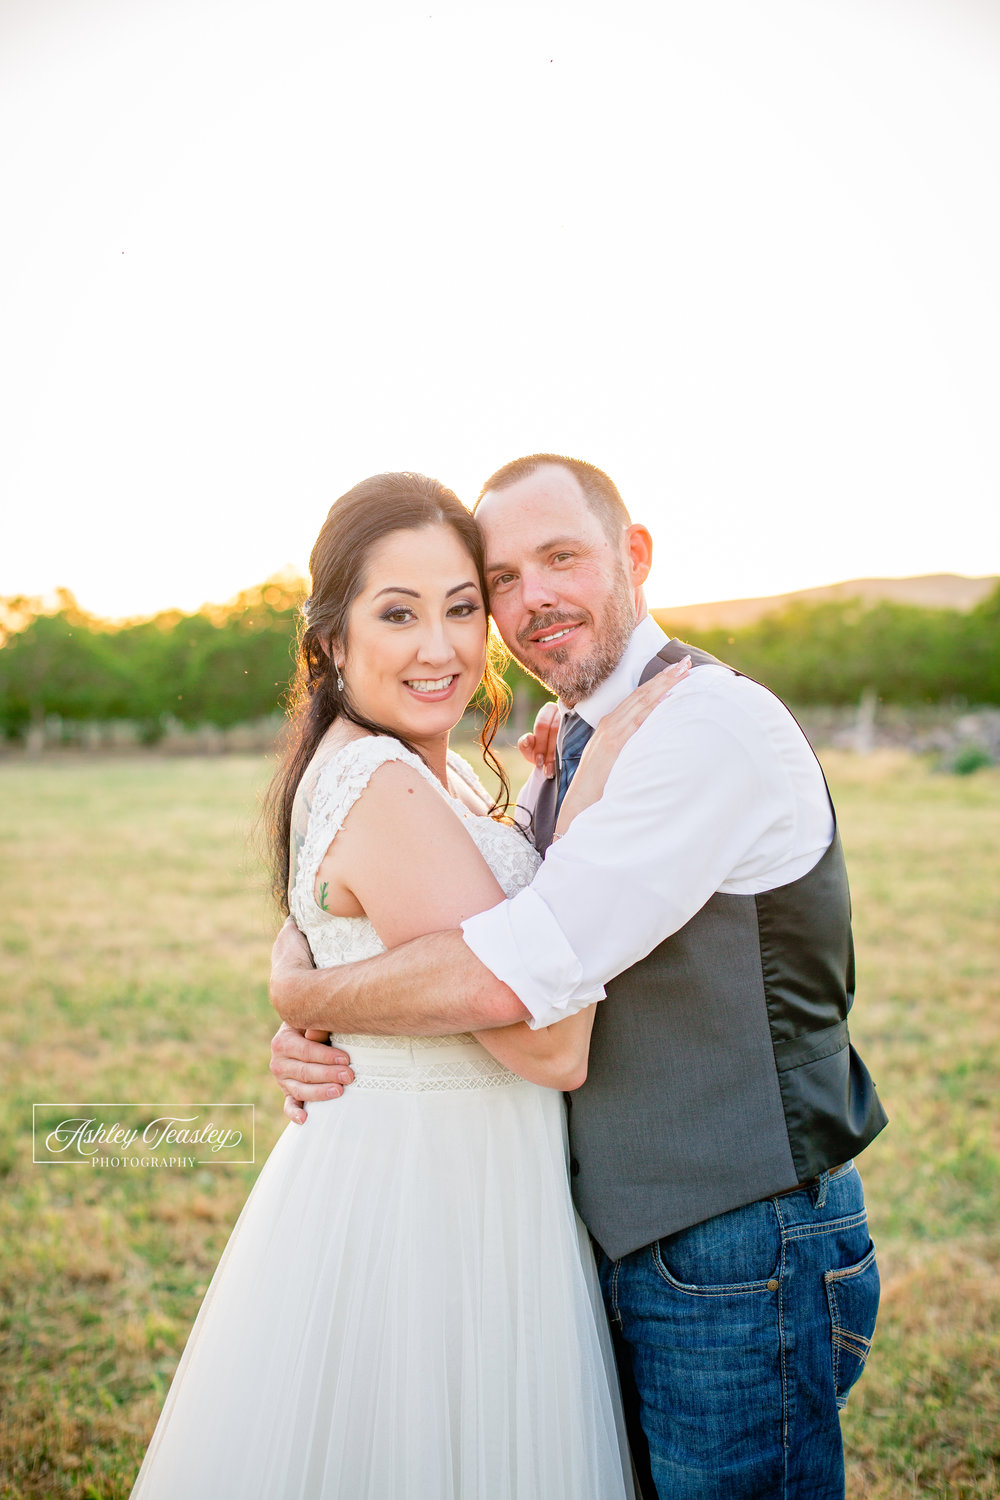 Jeanette & Rance - Butte Star Ranch - Sacramento Wedding Photographer - Ashley Teasley Photography (9 of 41).jpg